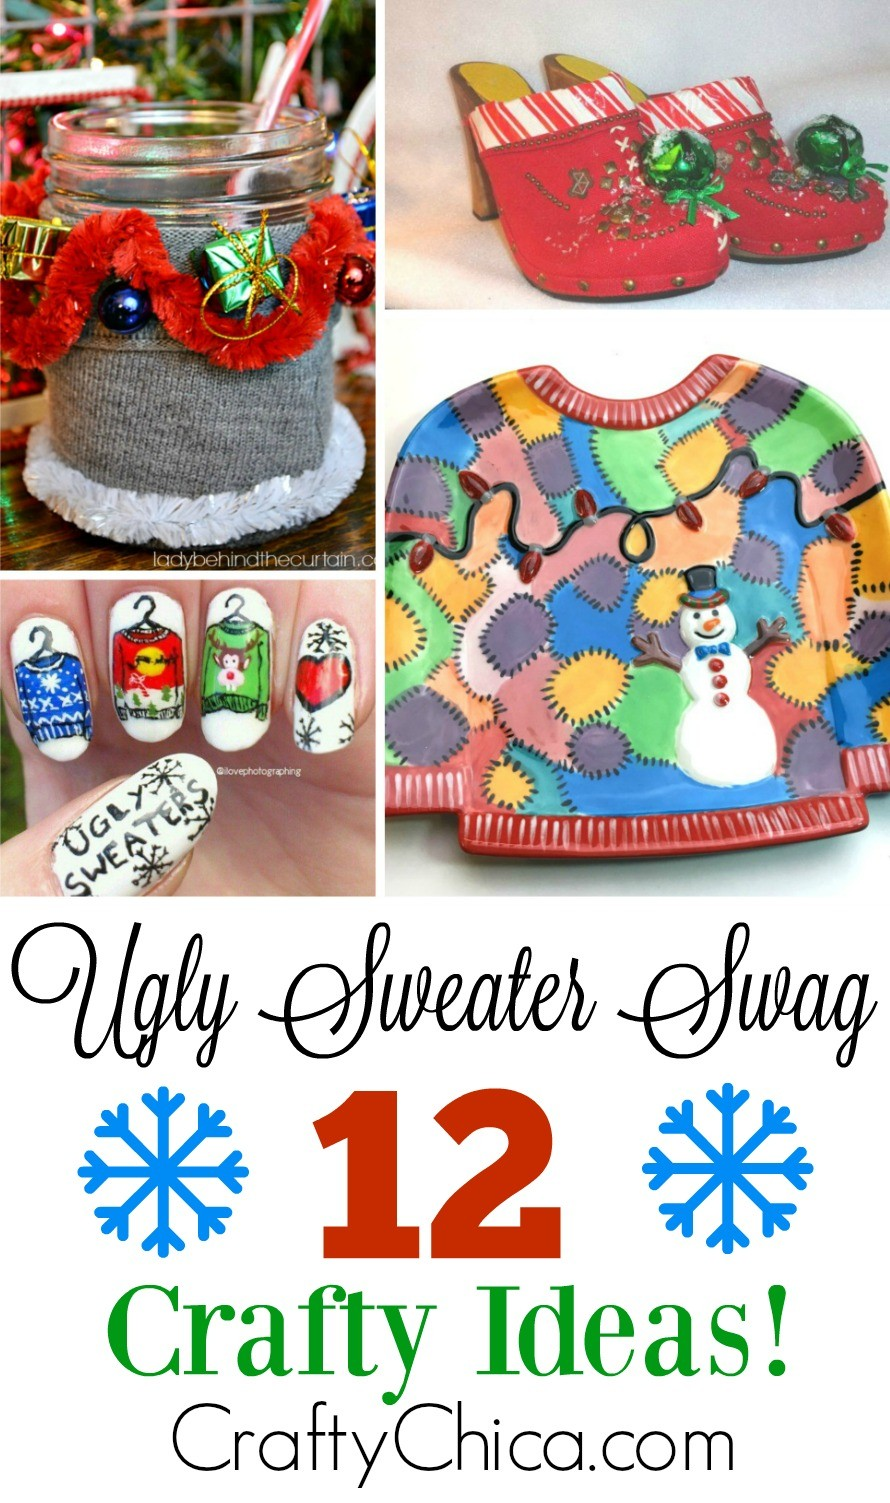 709eec532a13a Ugly Christmas Sweater Swag - The Crafty Chica